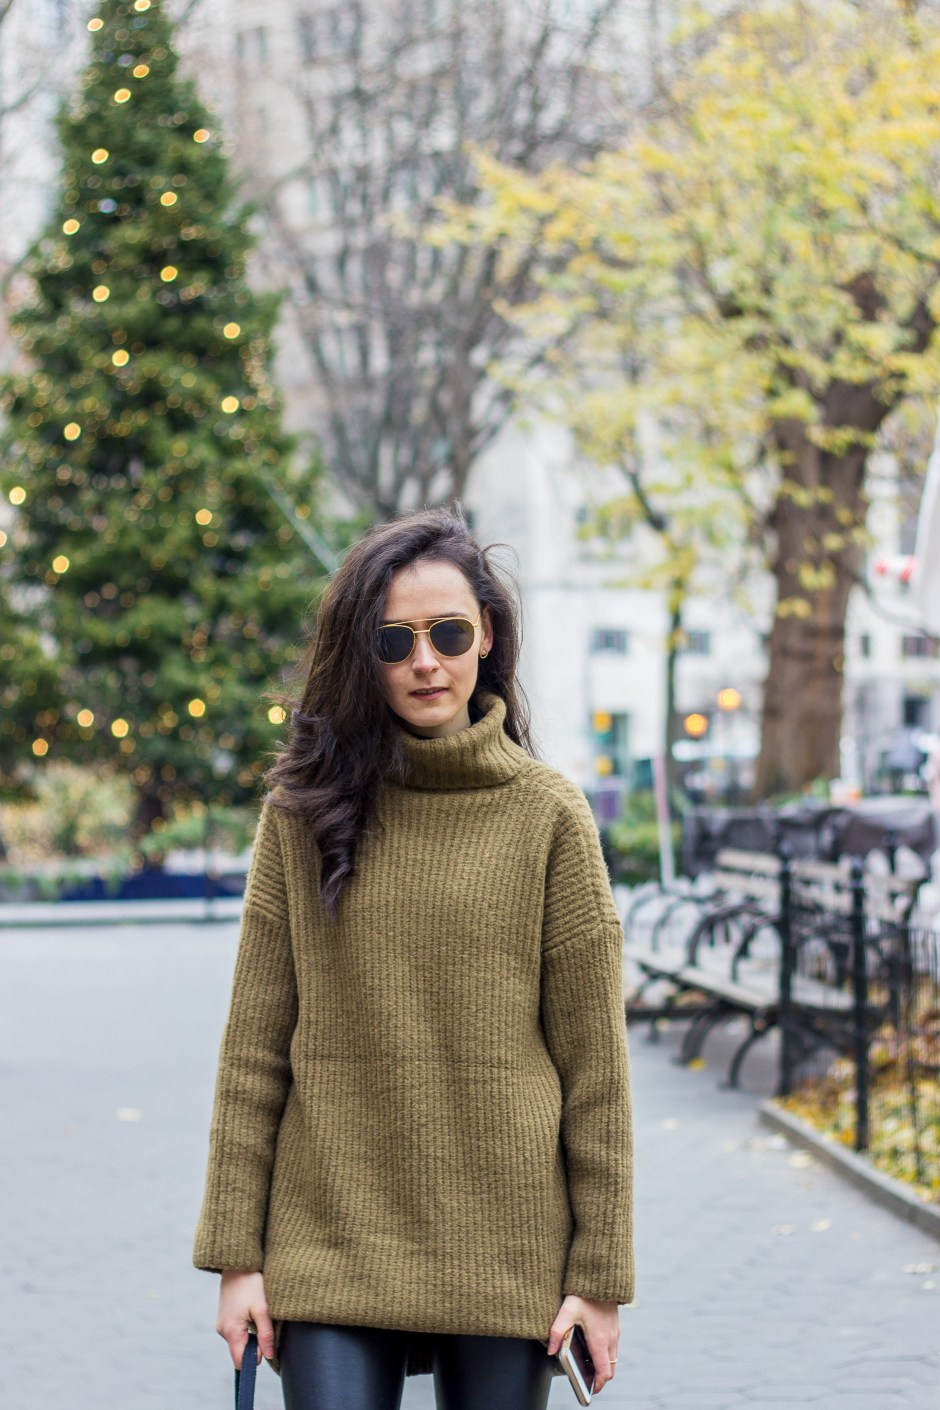 NYC Blogger: Sweater dress 3